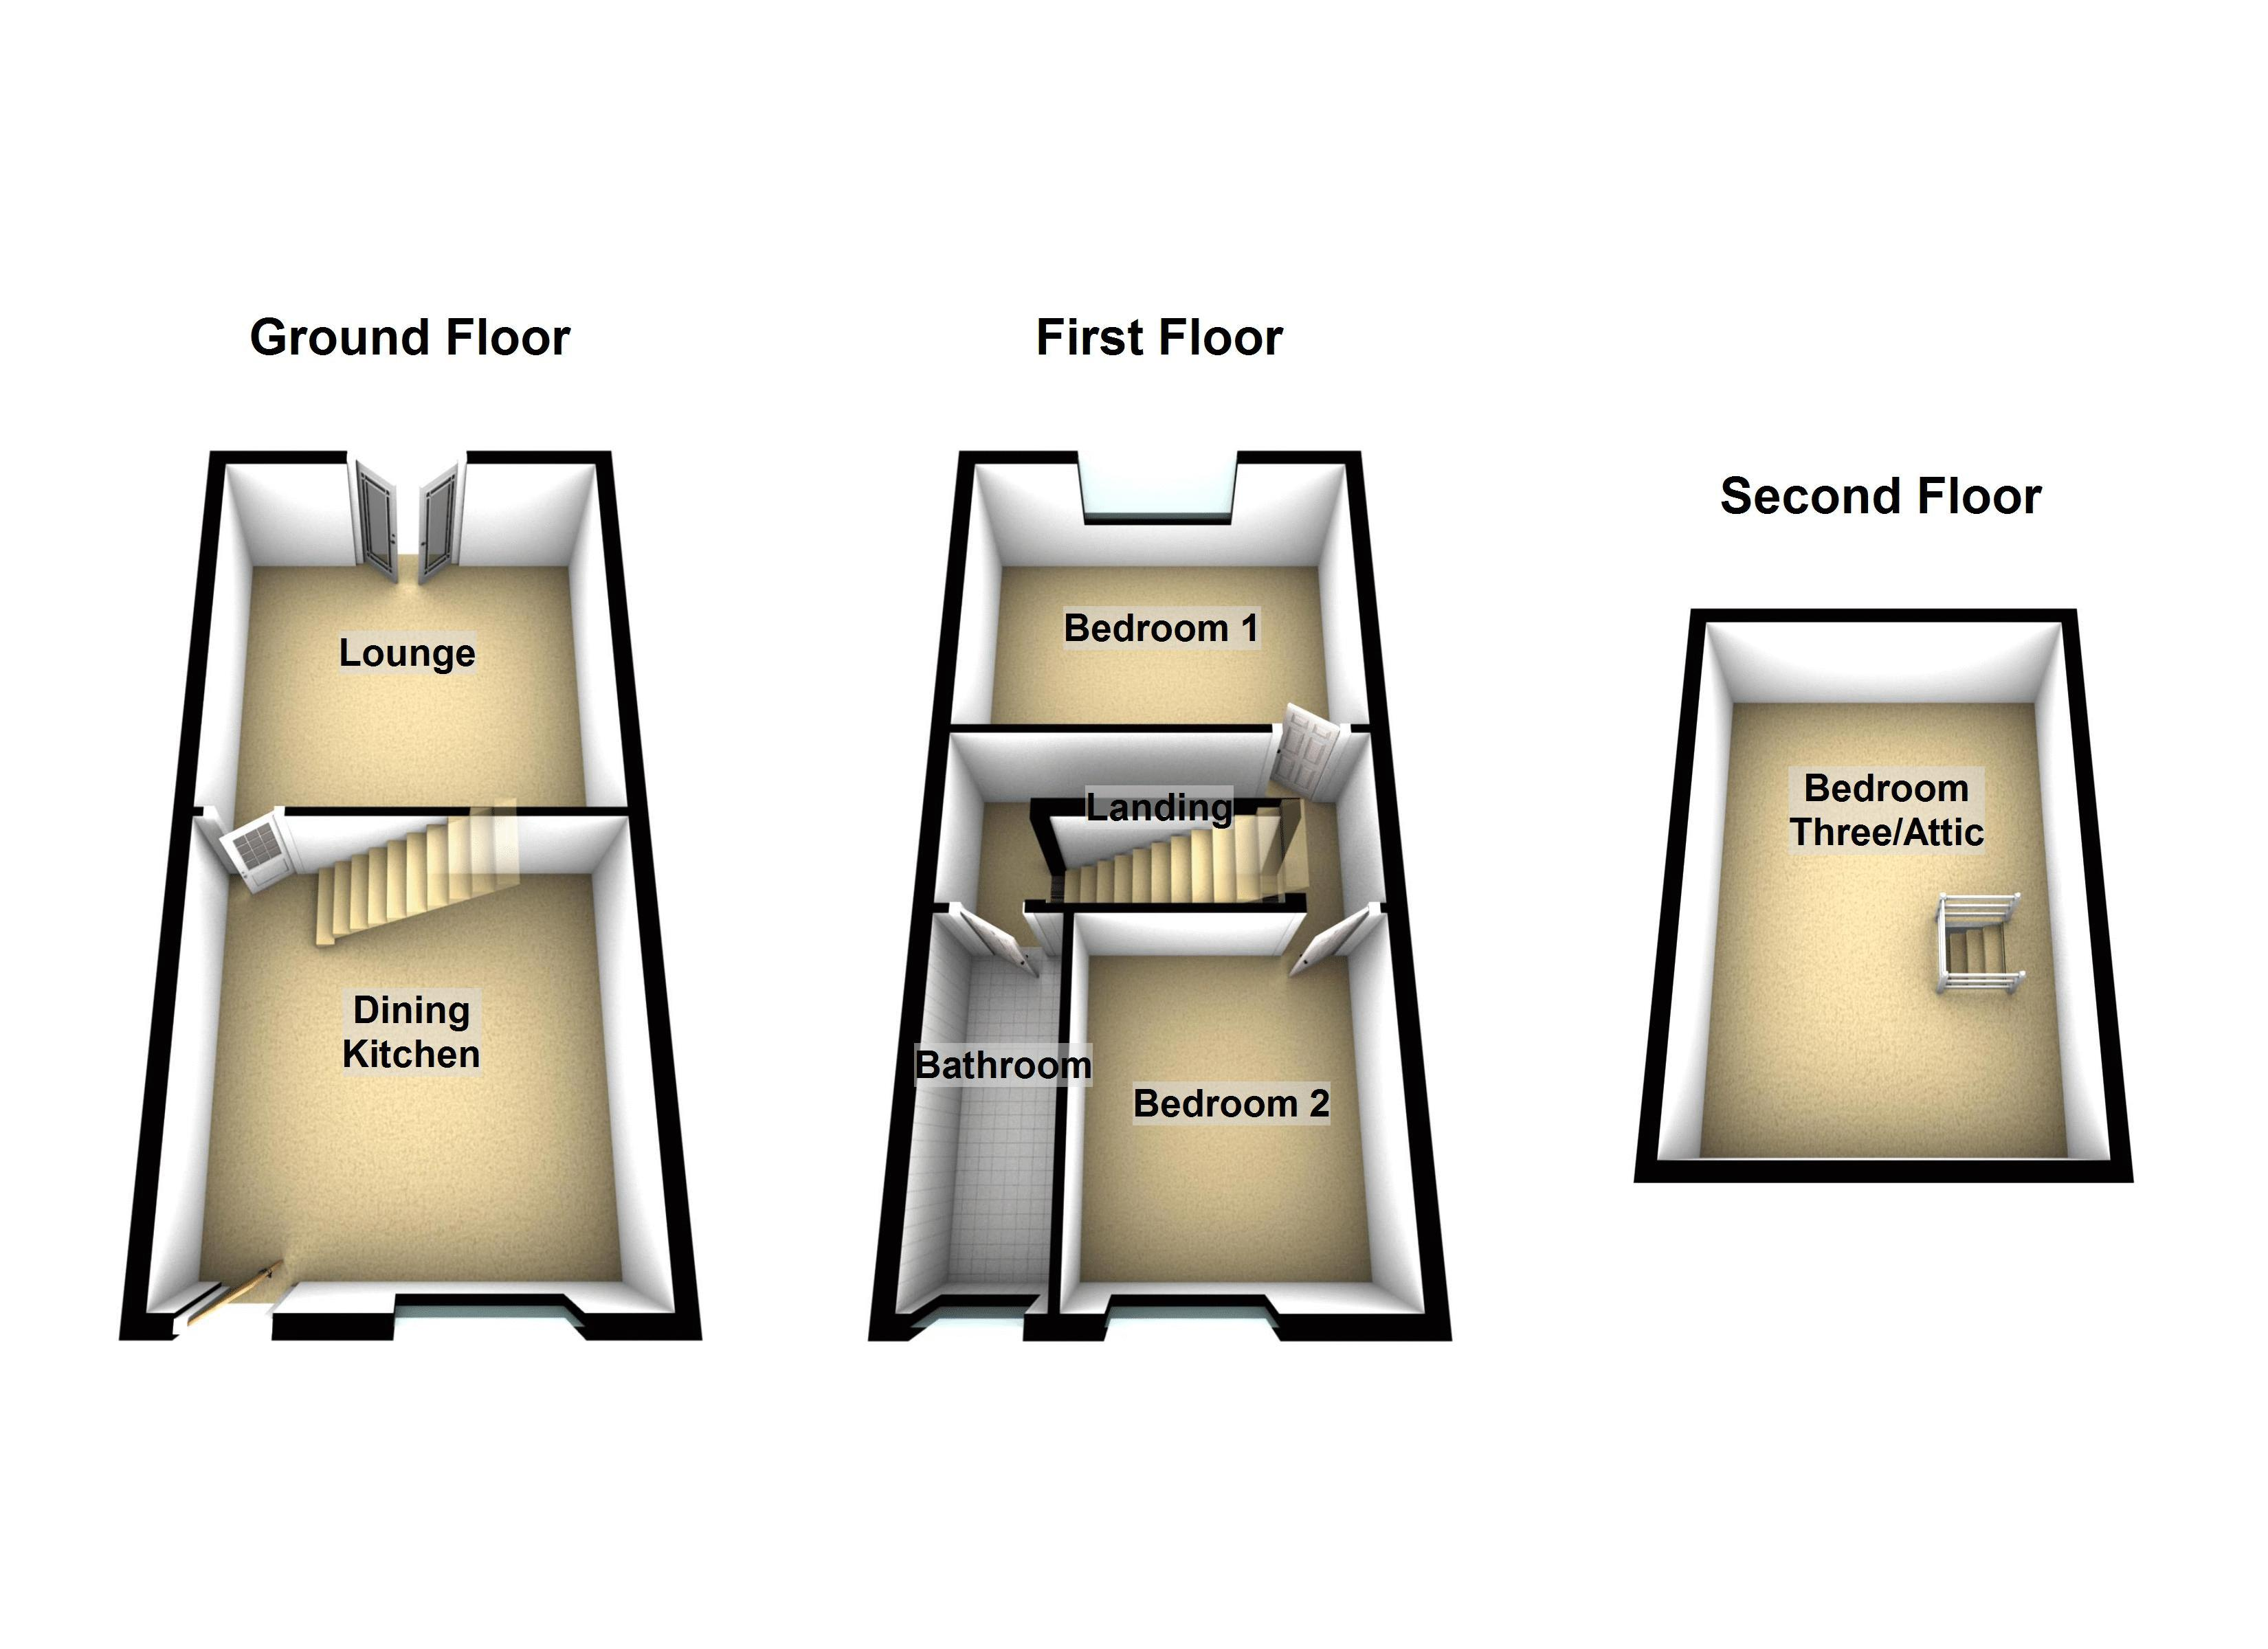 Ground/First/Second Floors